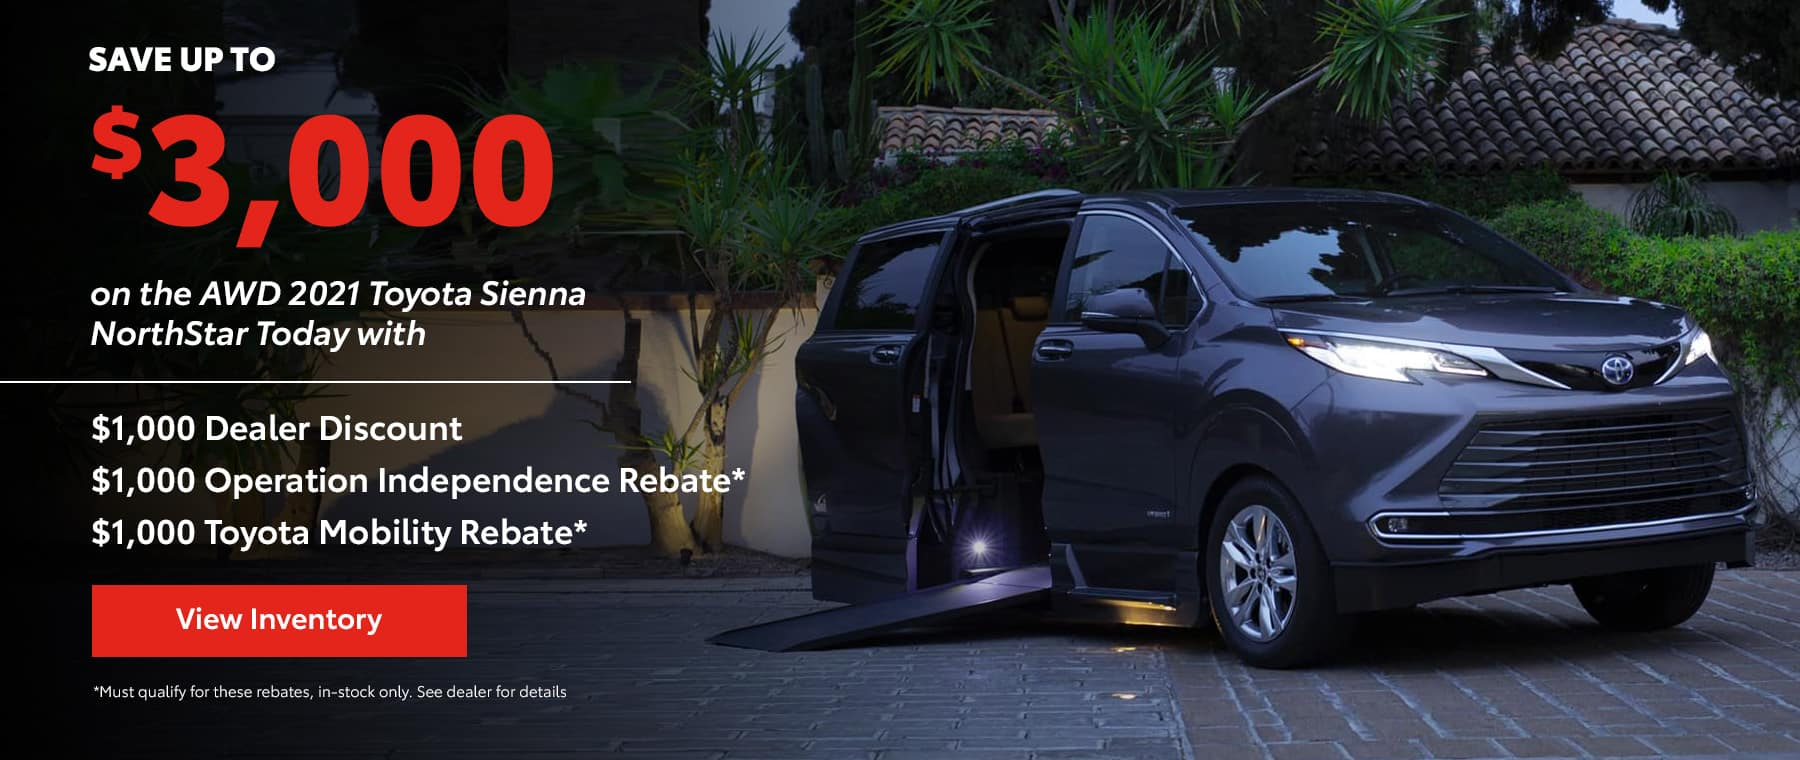 Save up to $3,000 on the AWD 2021 Toyota Sienna NorthStar Today with $1,000 Dealer Discount $1,000 Operation Independence Rebate* $1,000 Toyota Mobility Rebate*